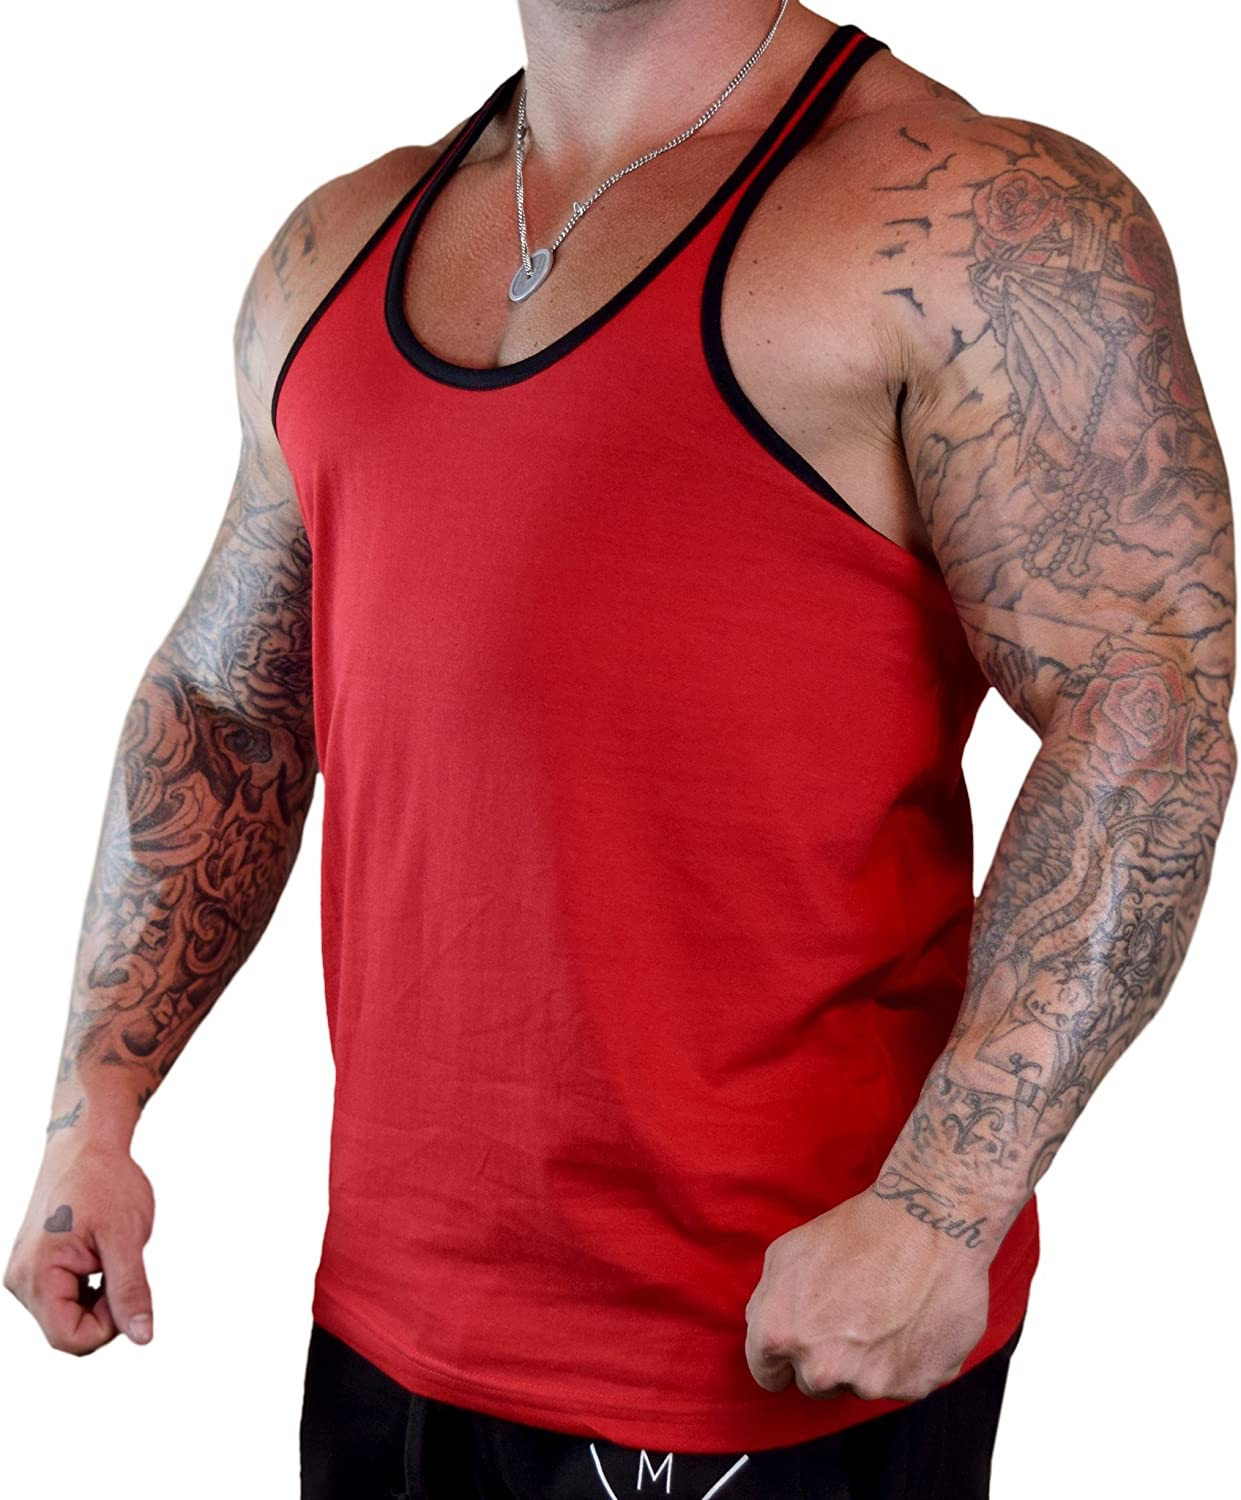 Mens FCK You Me Off Her This Him Red Tank Top Red